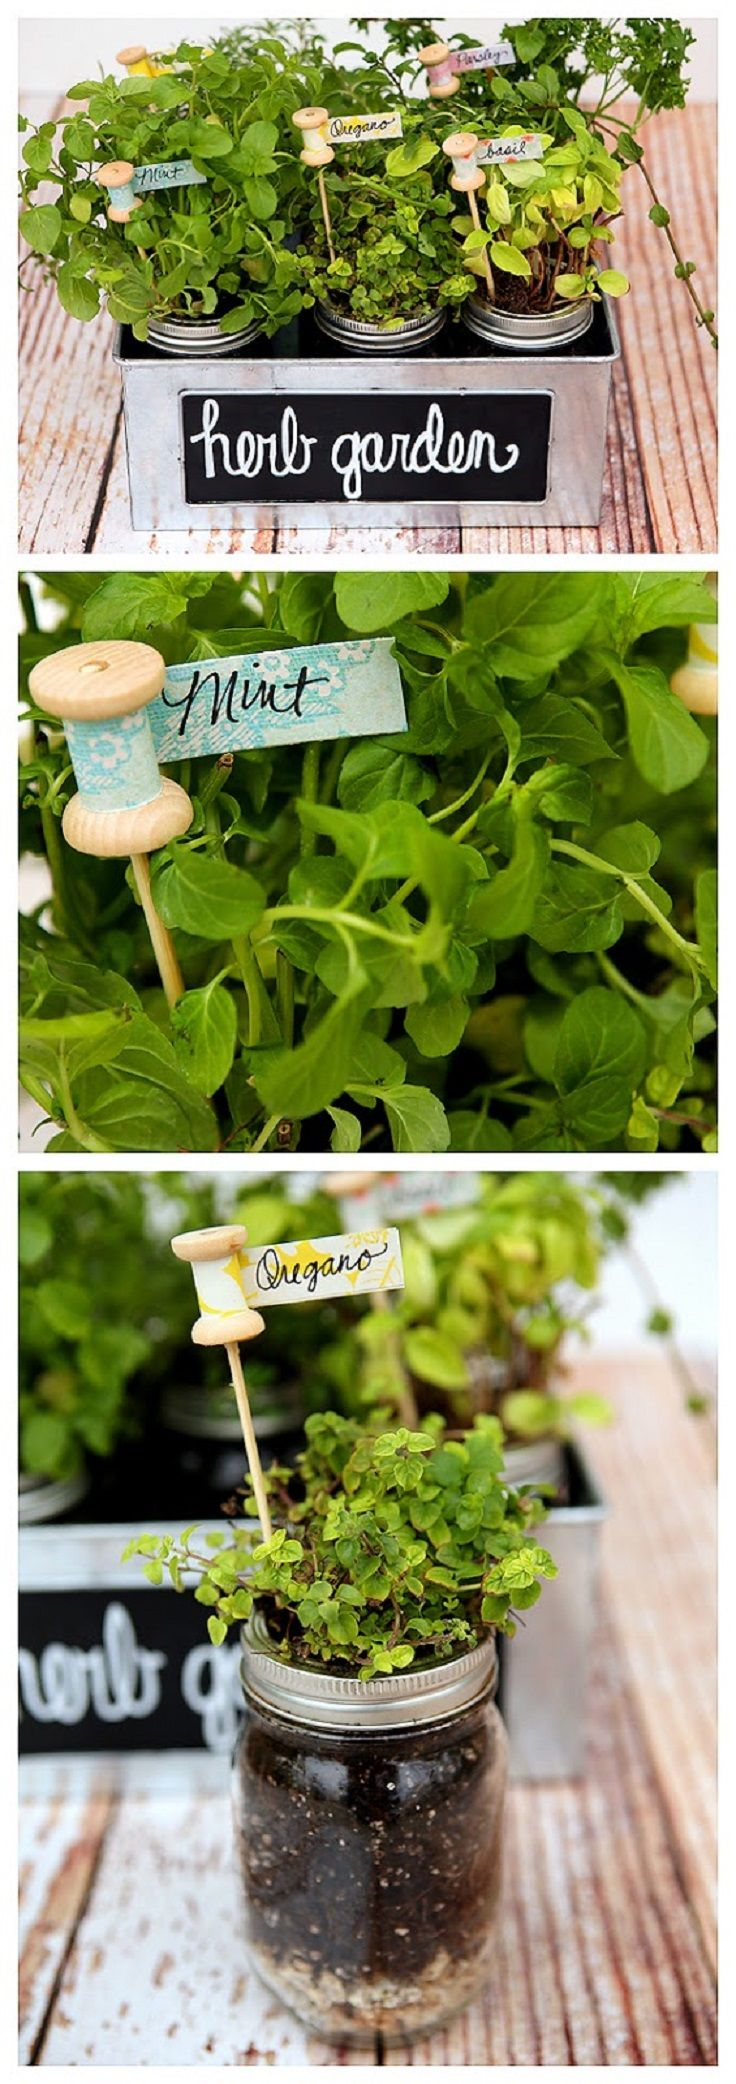 Using fresh herbs gives a special taste to every meal. Having an indoor herb garden will provide you will fresh herbs all year long. This way you can have your own organic, safe to use herbs. And why not make the garden look fabulous? It can easily become a great decoration for your kitchen. All you need are some interesting herb containers you can make on your own. We will show you how to create low-budget planters for your favorite herbs in no time and by using just a few simple things.